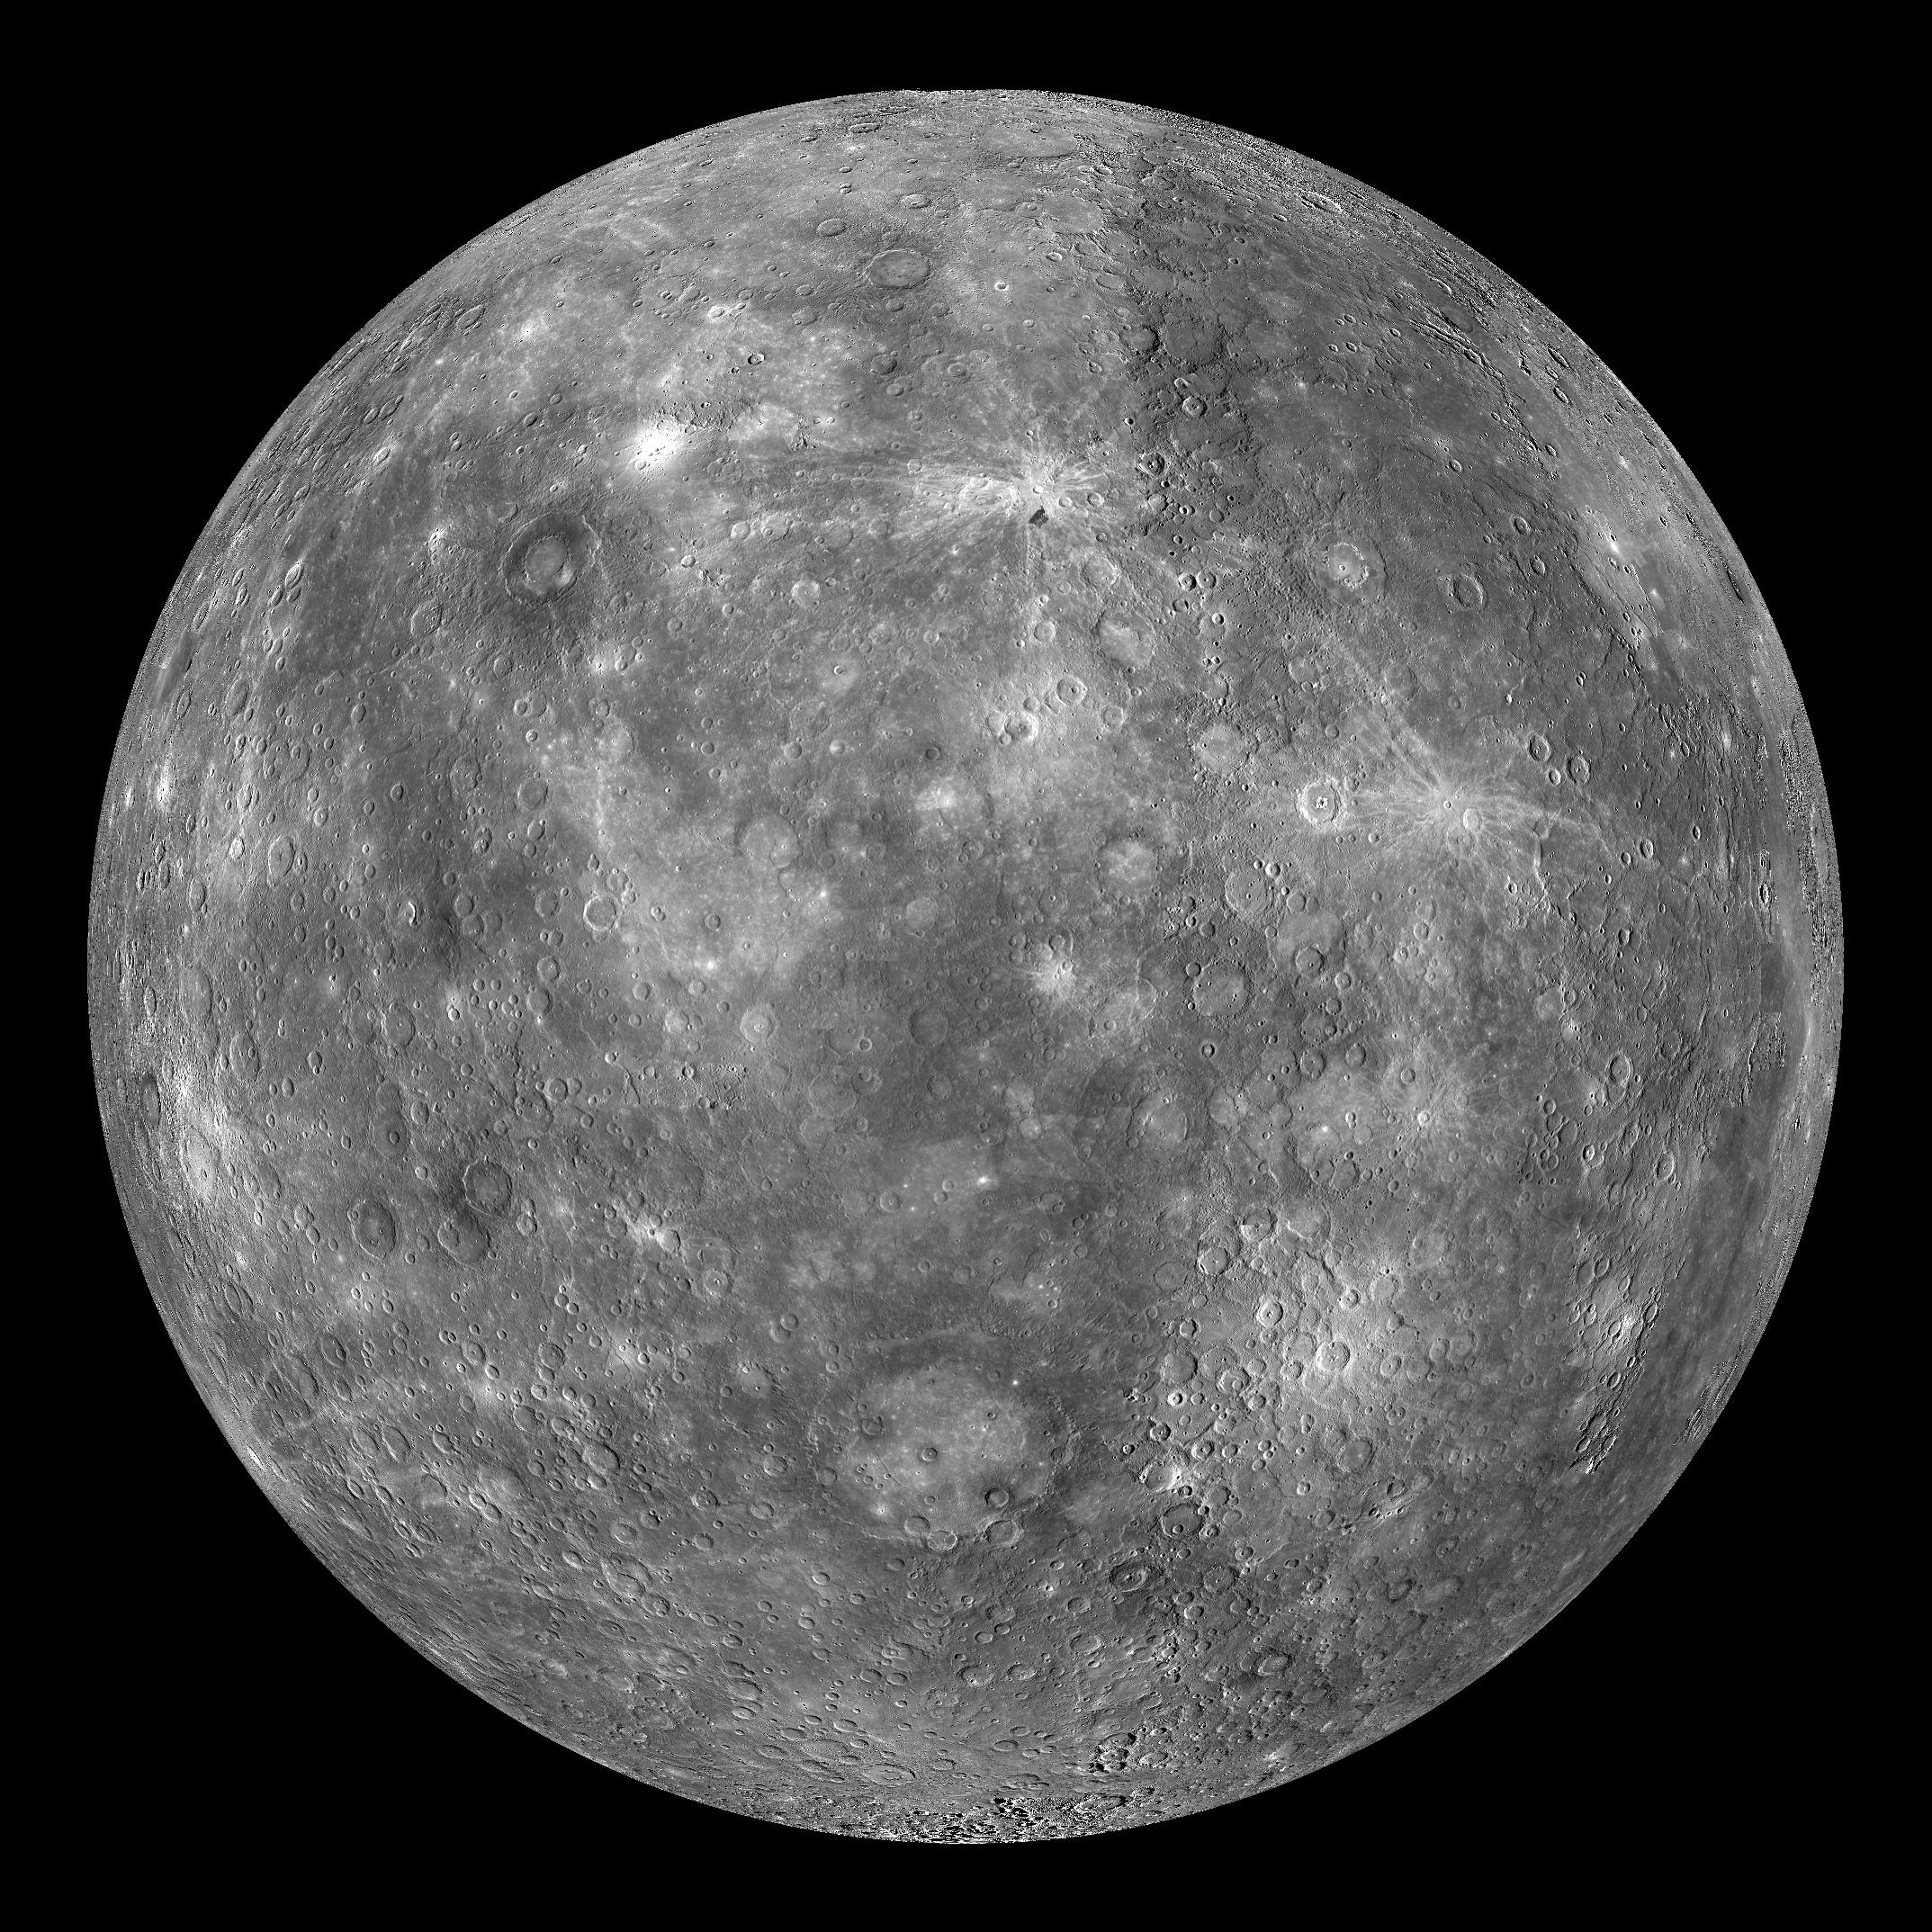 mercury pictures from nasa - photo #1